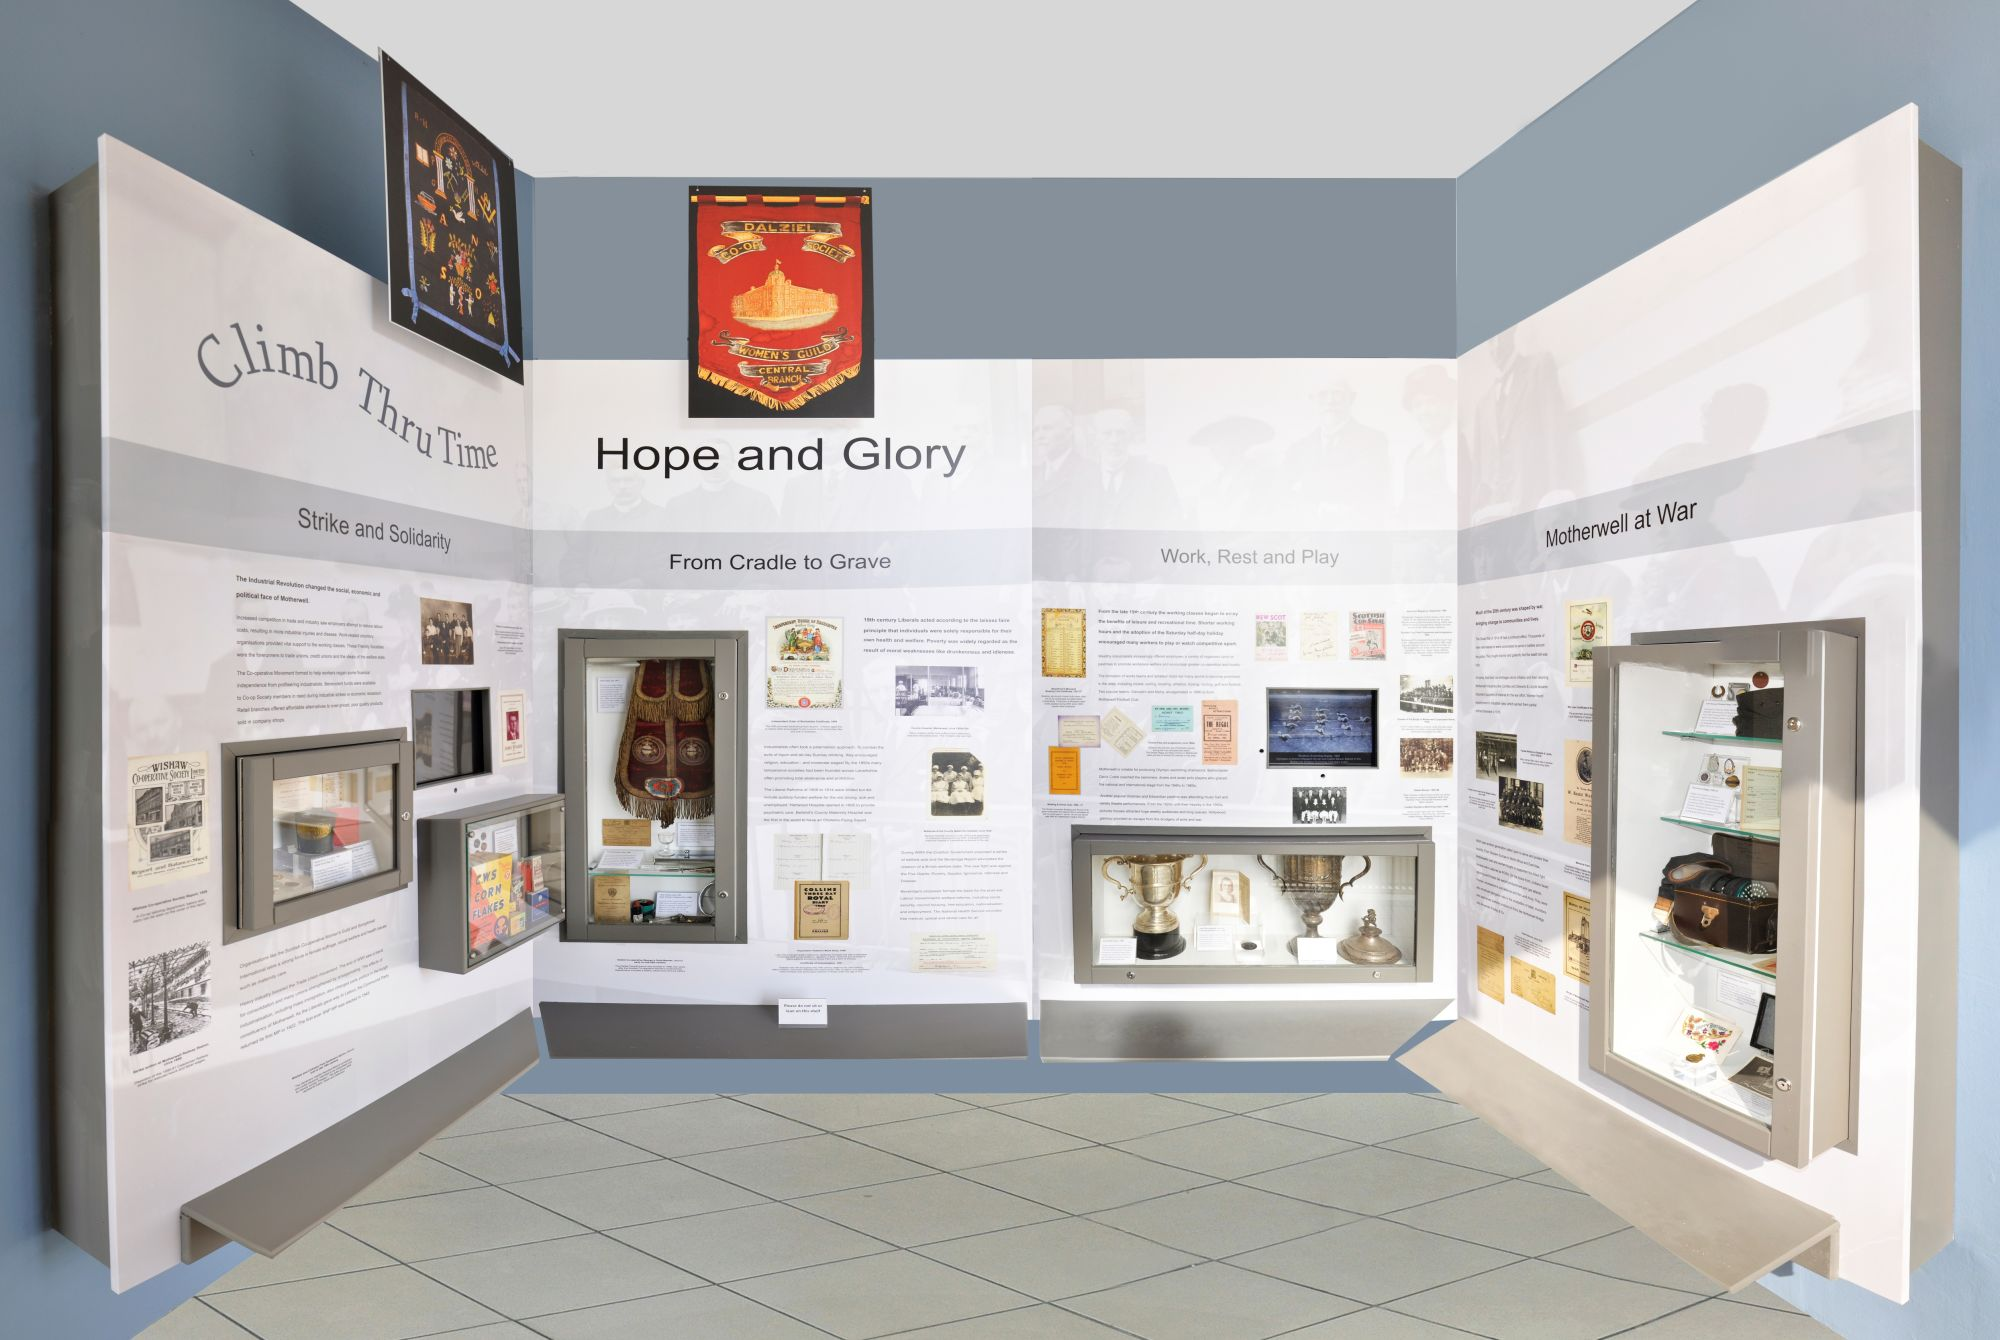 Photograph showing Climb Thru Time Level 2: Hope and Glory exhibit